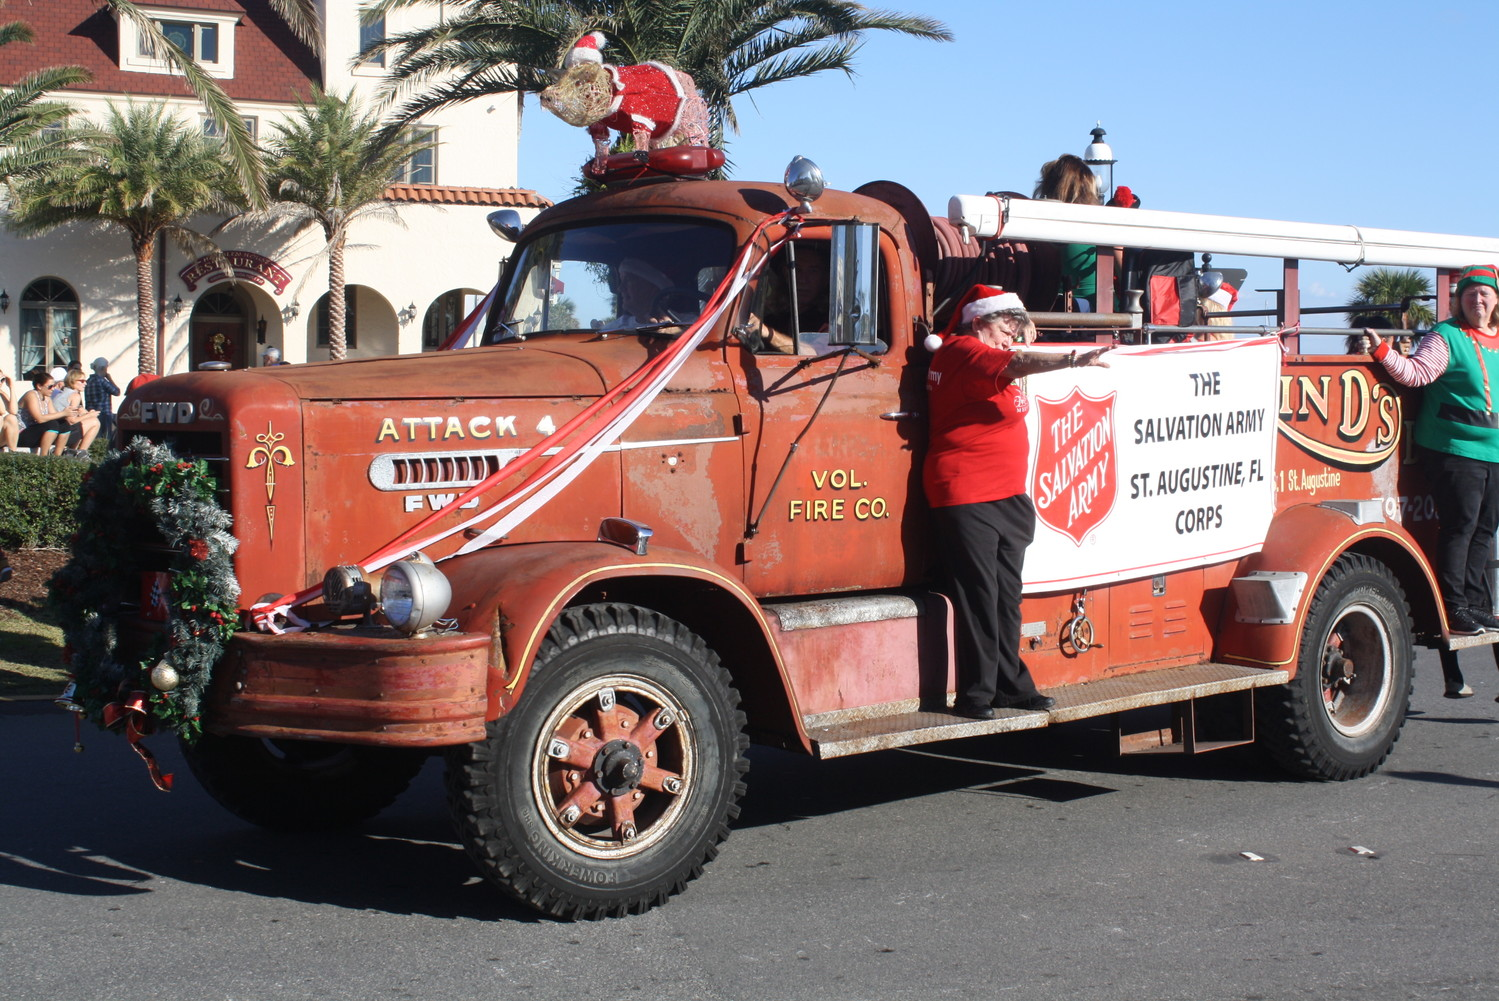 The Salvation Army truck makes its way through Downtown St. Augustine.